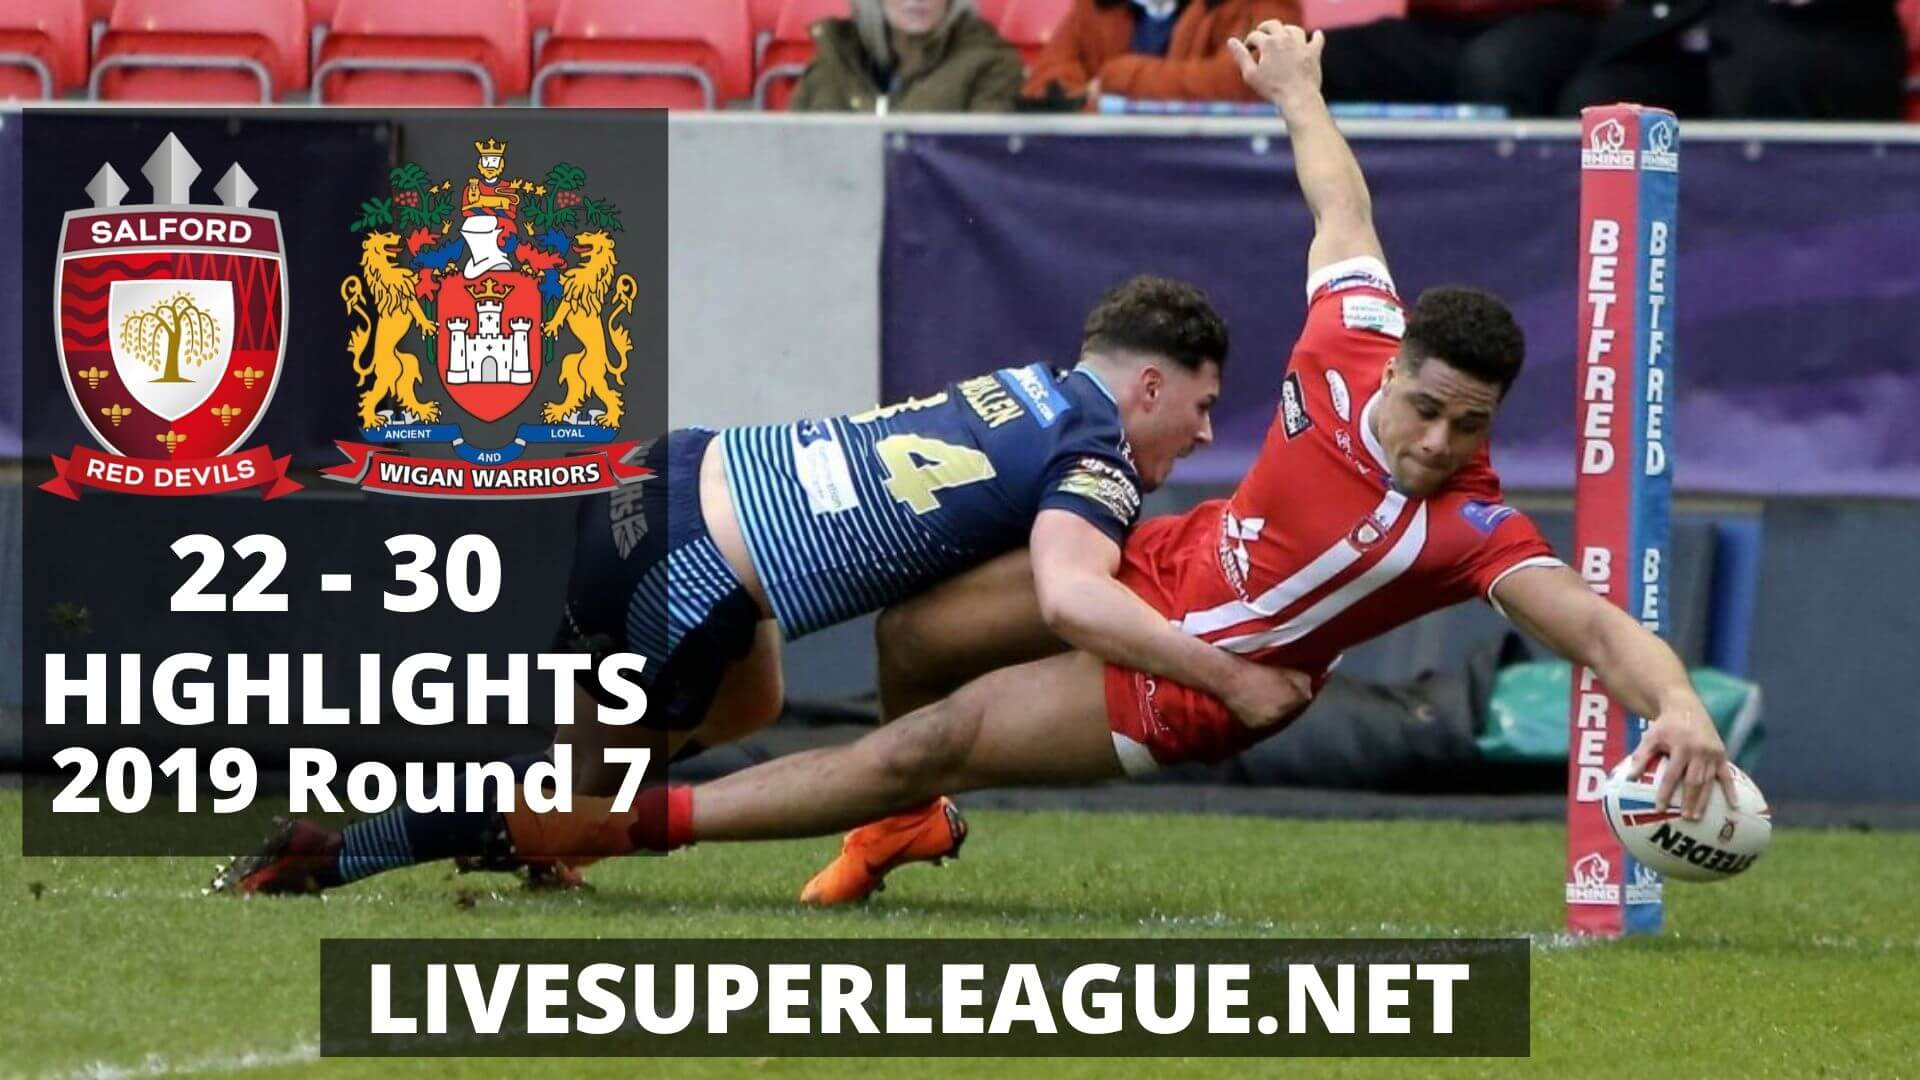 Salford Red Devils vs Wigan Warriors Highlights 2019 Round 7